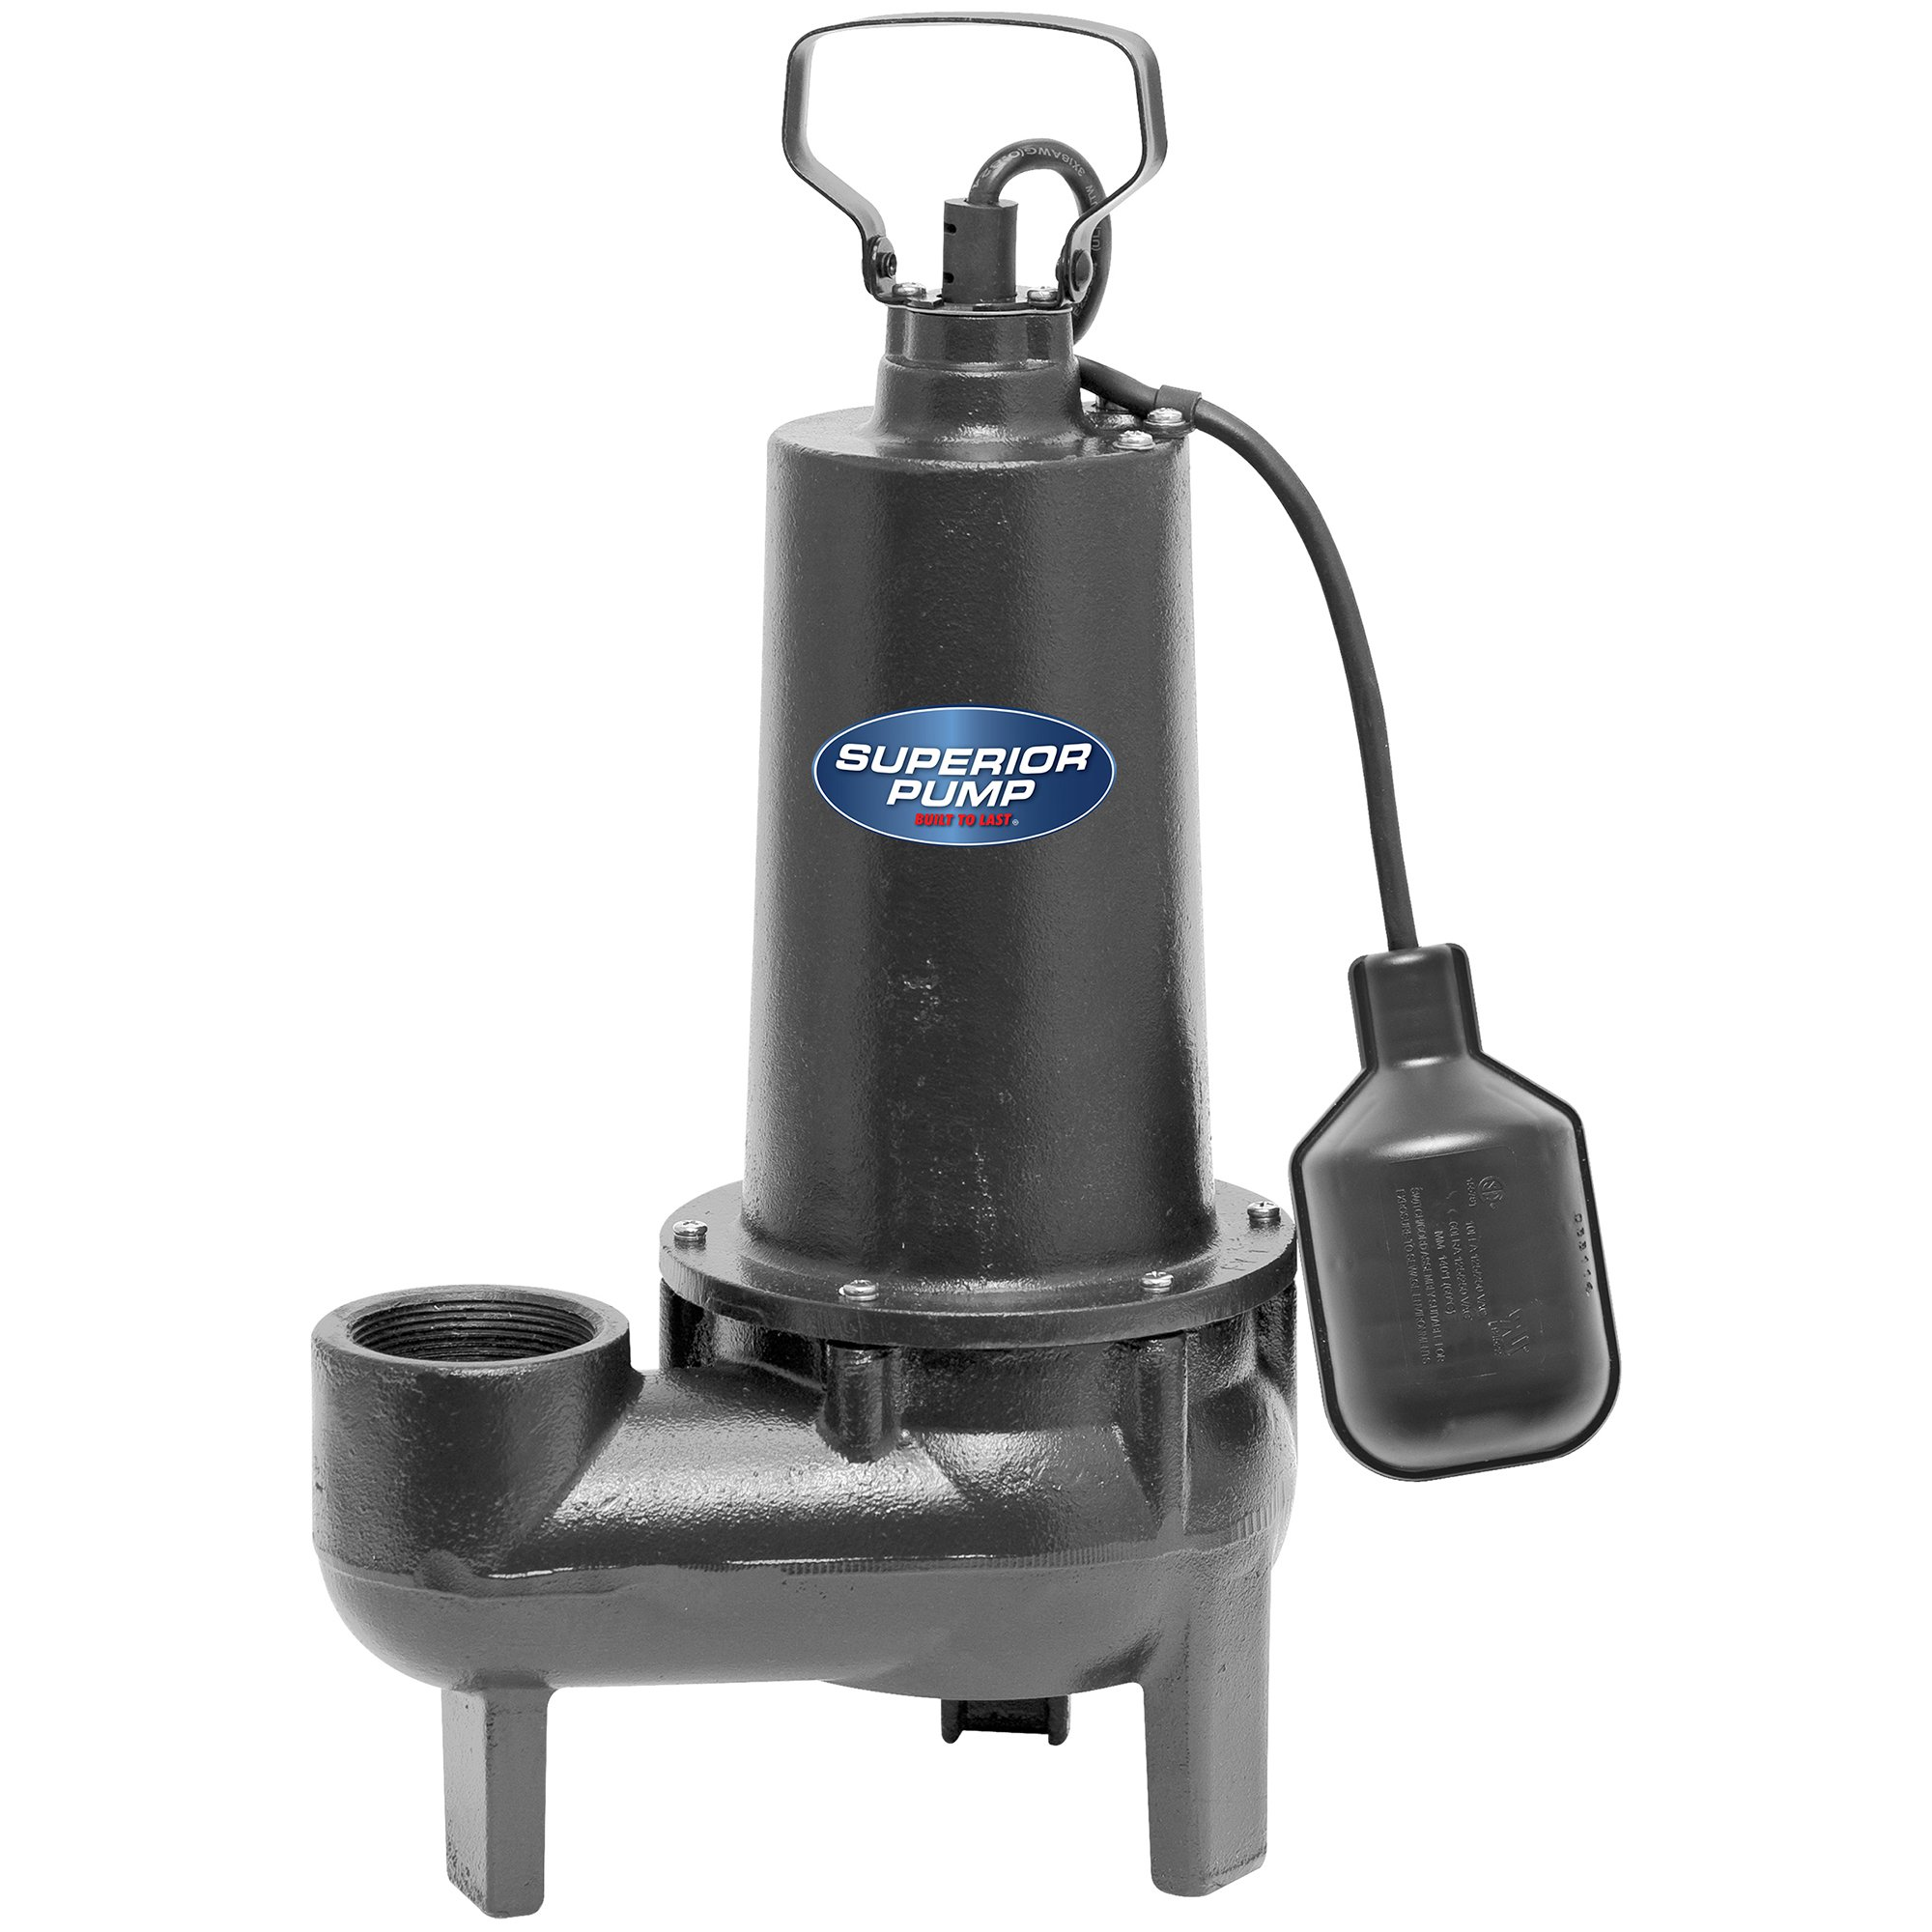 Superior Pump 92501 1/2 HP 2 Inch Discharge Non Clogging Cast Iron Sewage Pump